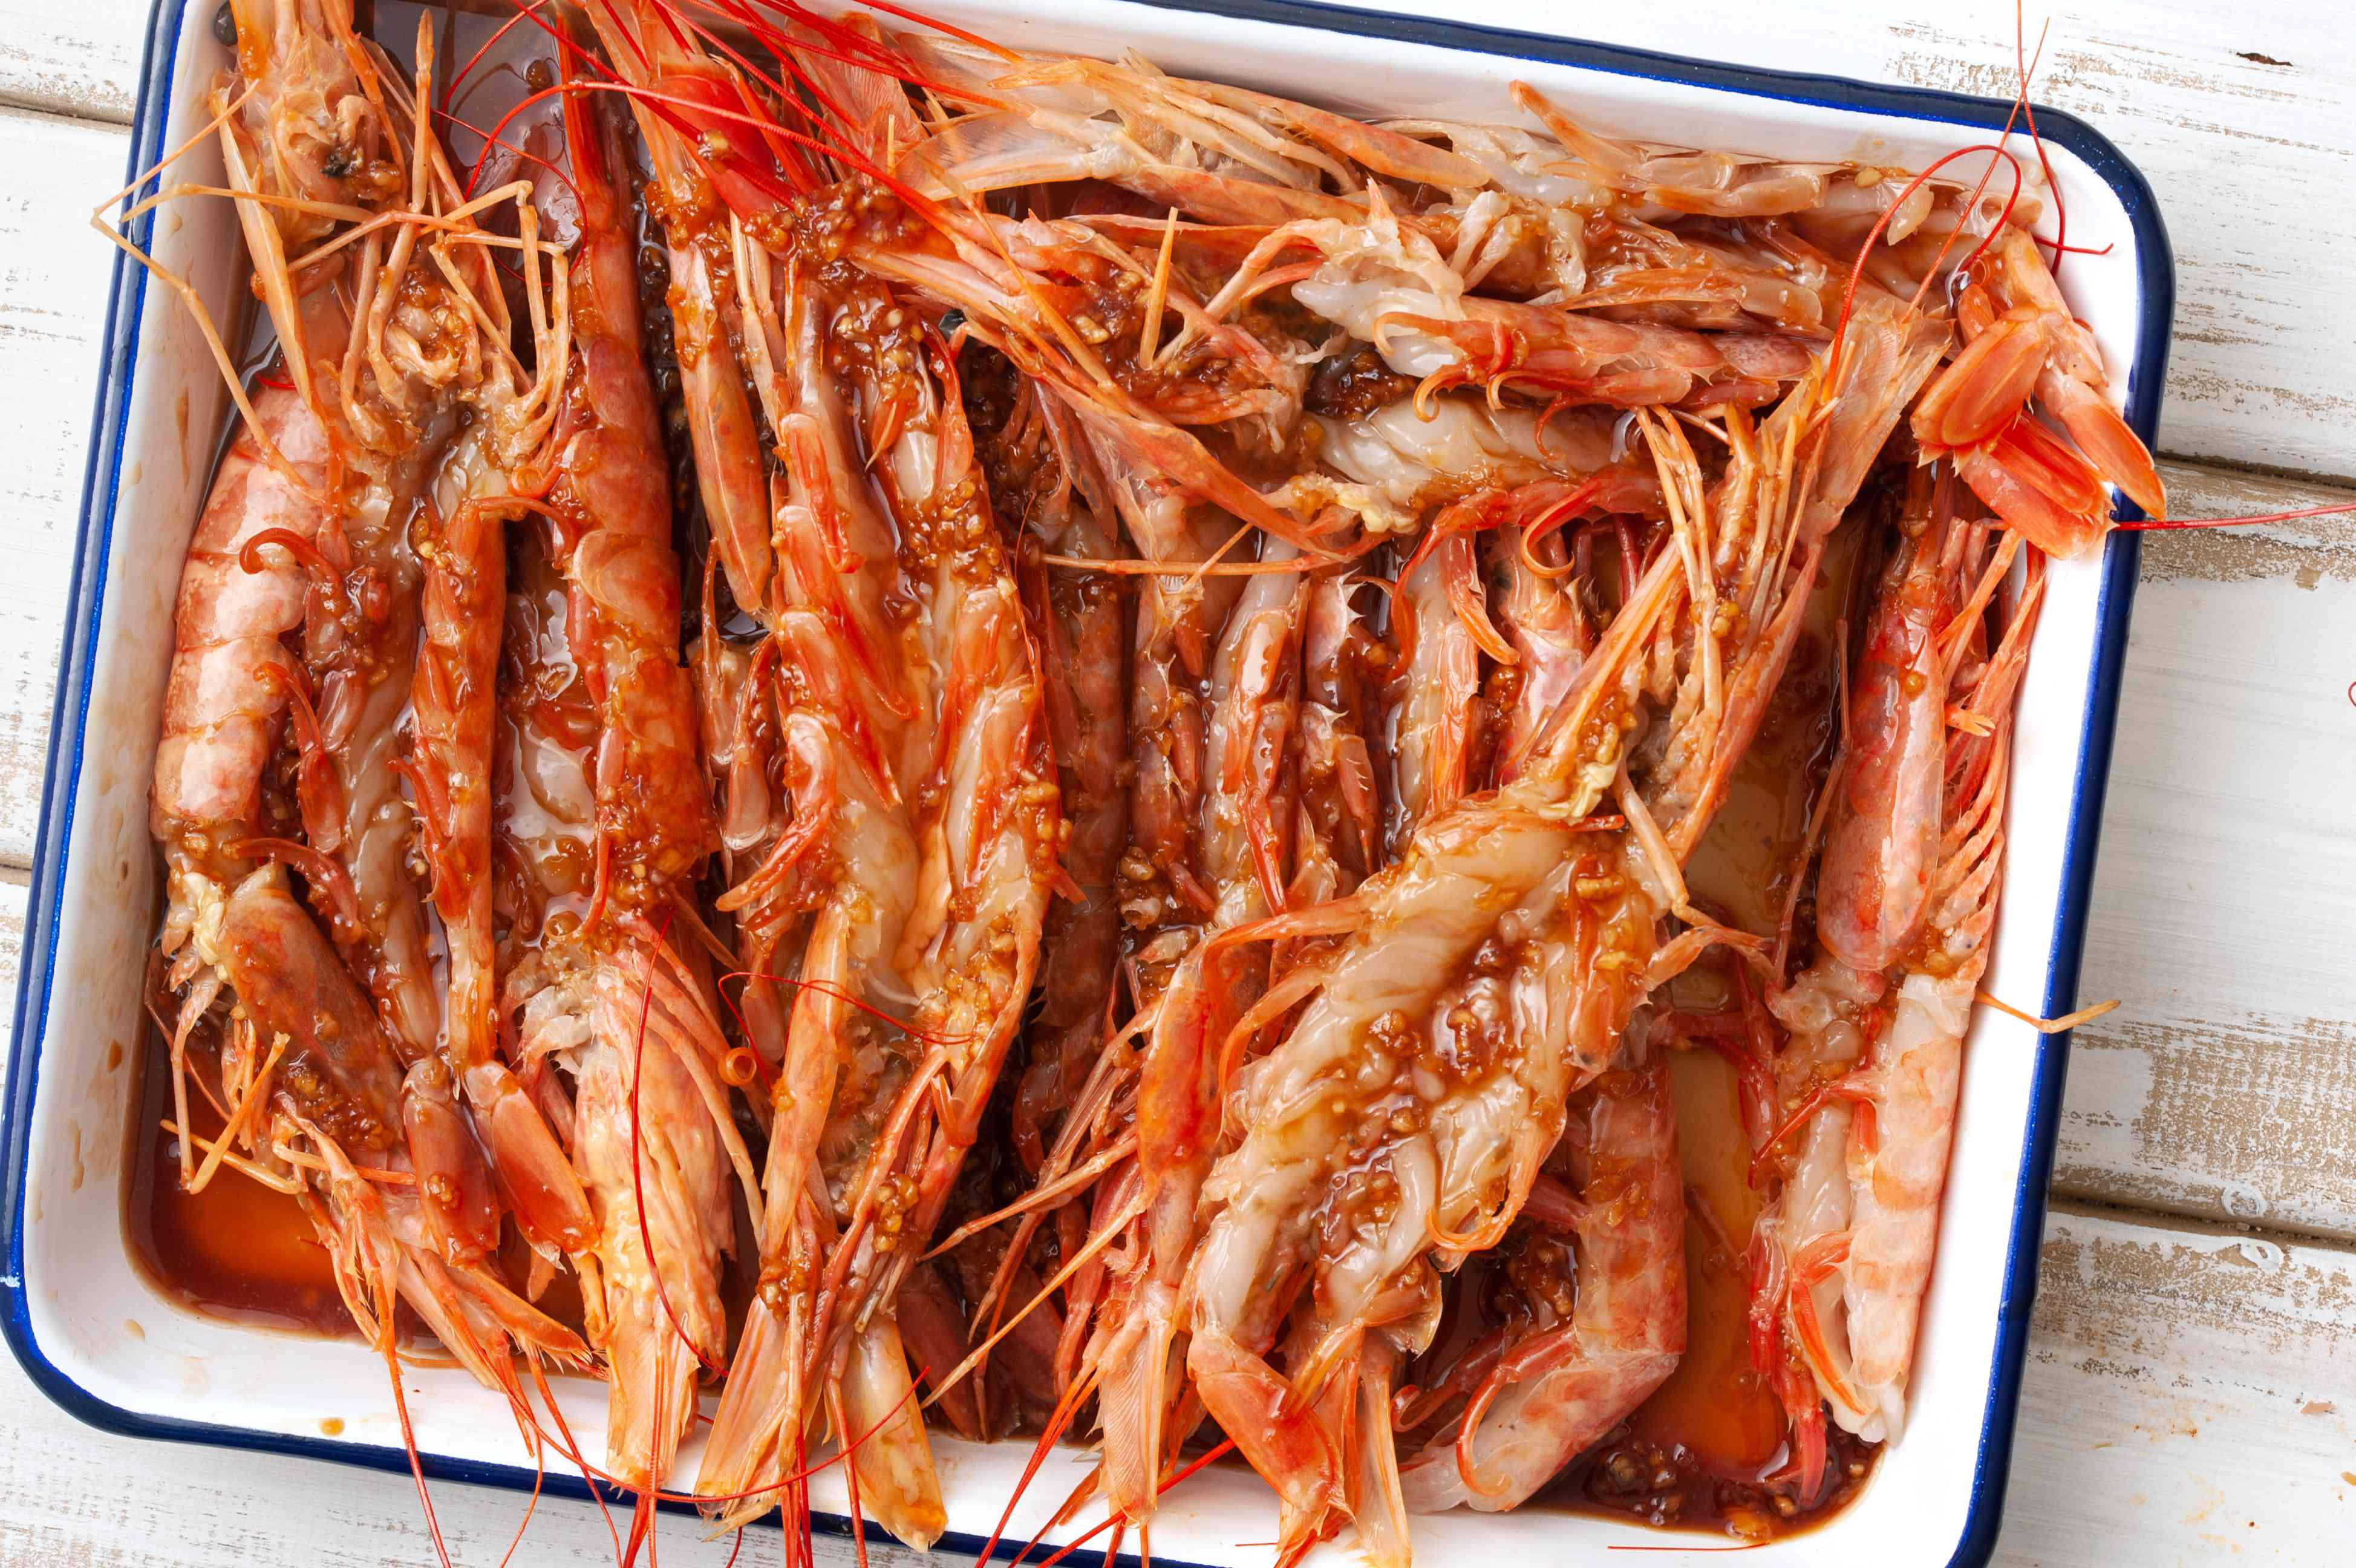 Shrimp arranged in baking dish, covered in marinade